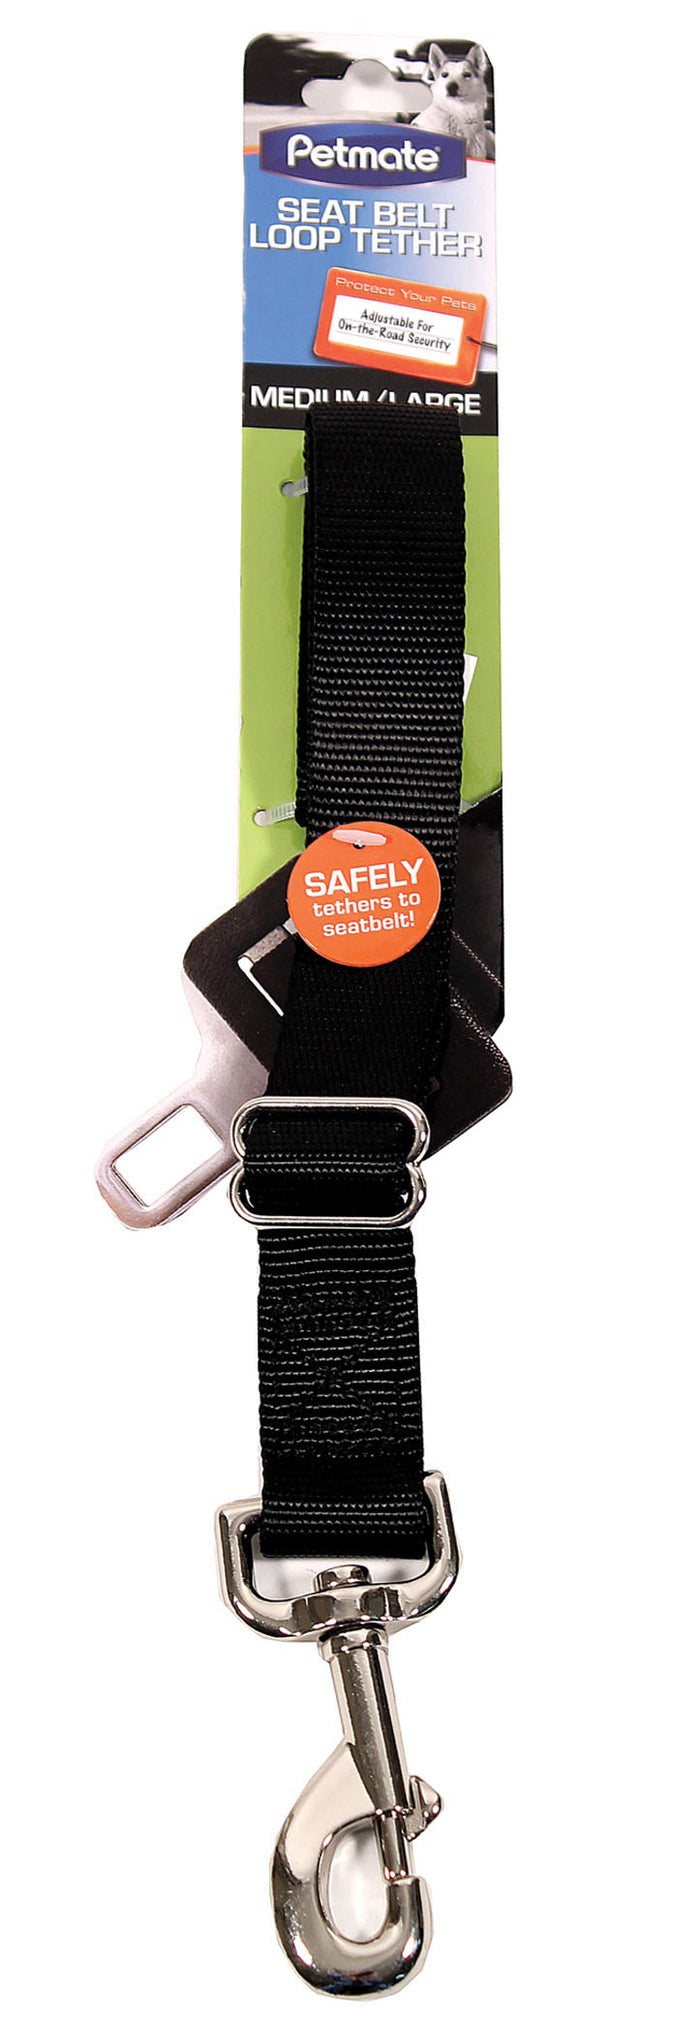 Seat Belt Loop Tether For Dogs